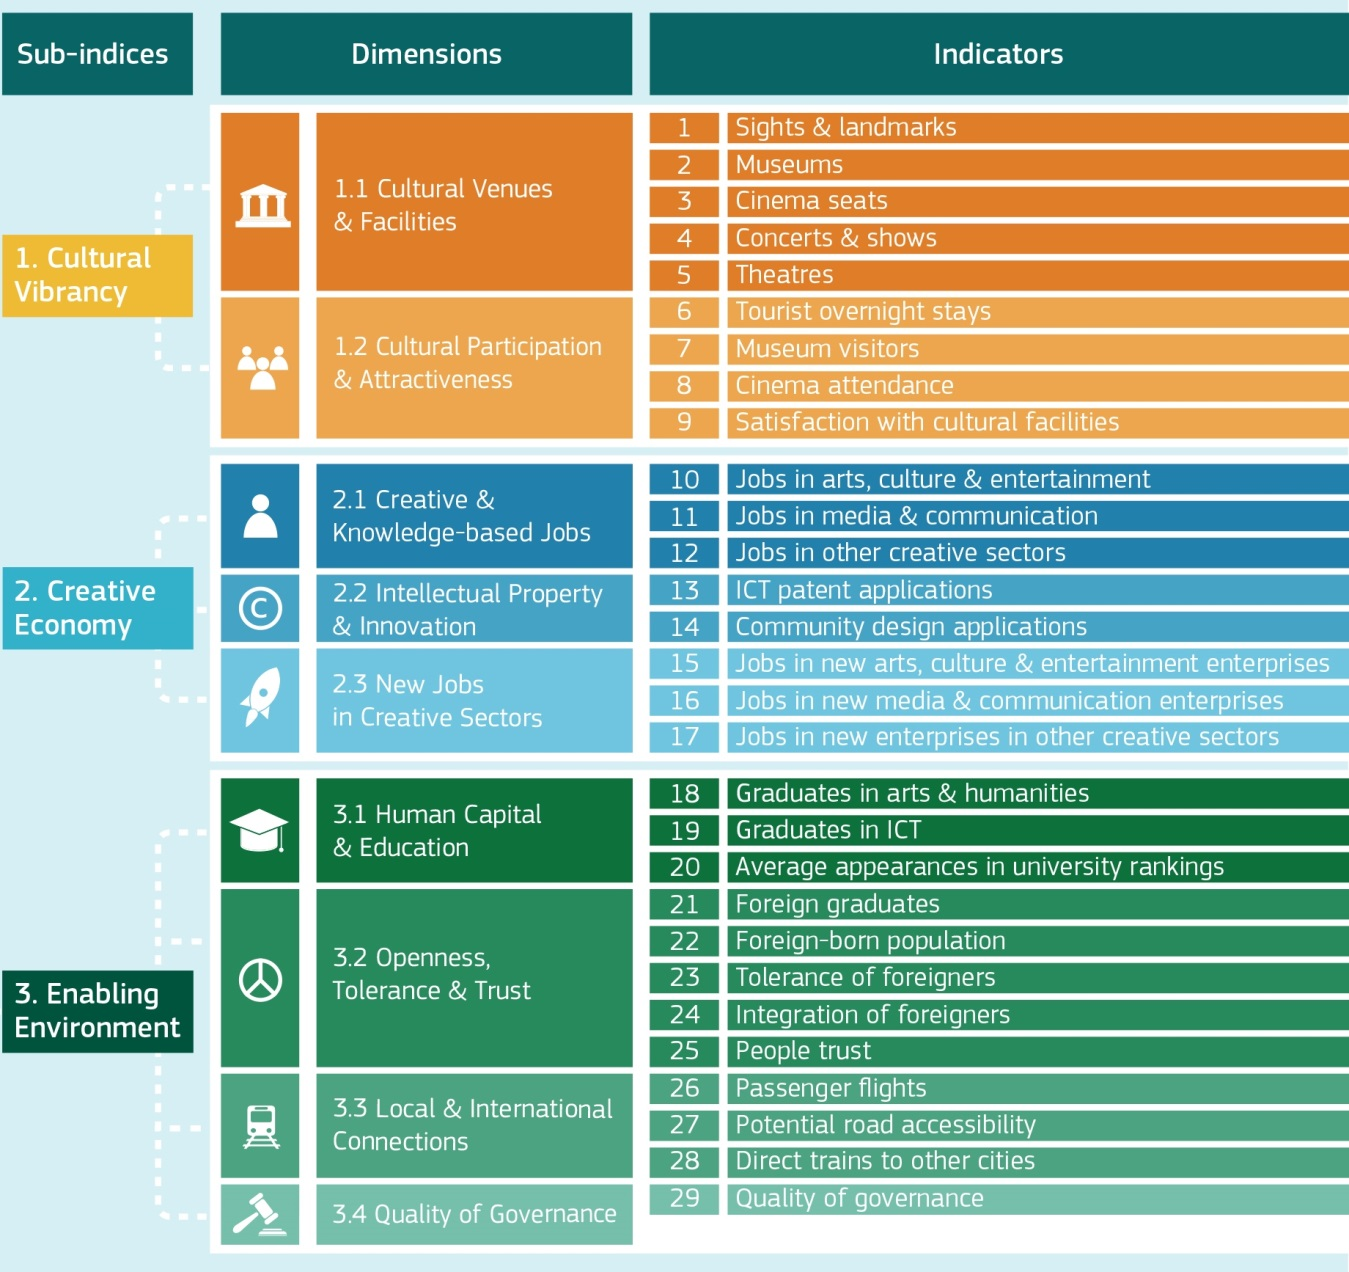 Table showing the 3 sub-indices, 9 dimensions and 29 indicators used in the Creative Cities Monitor.